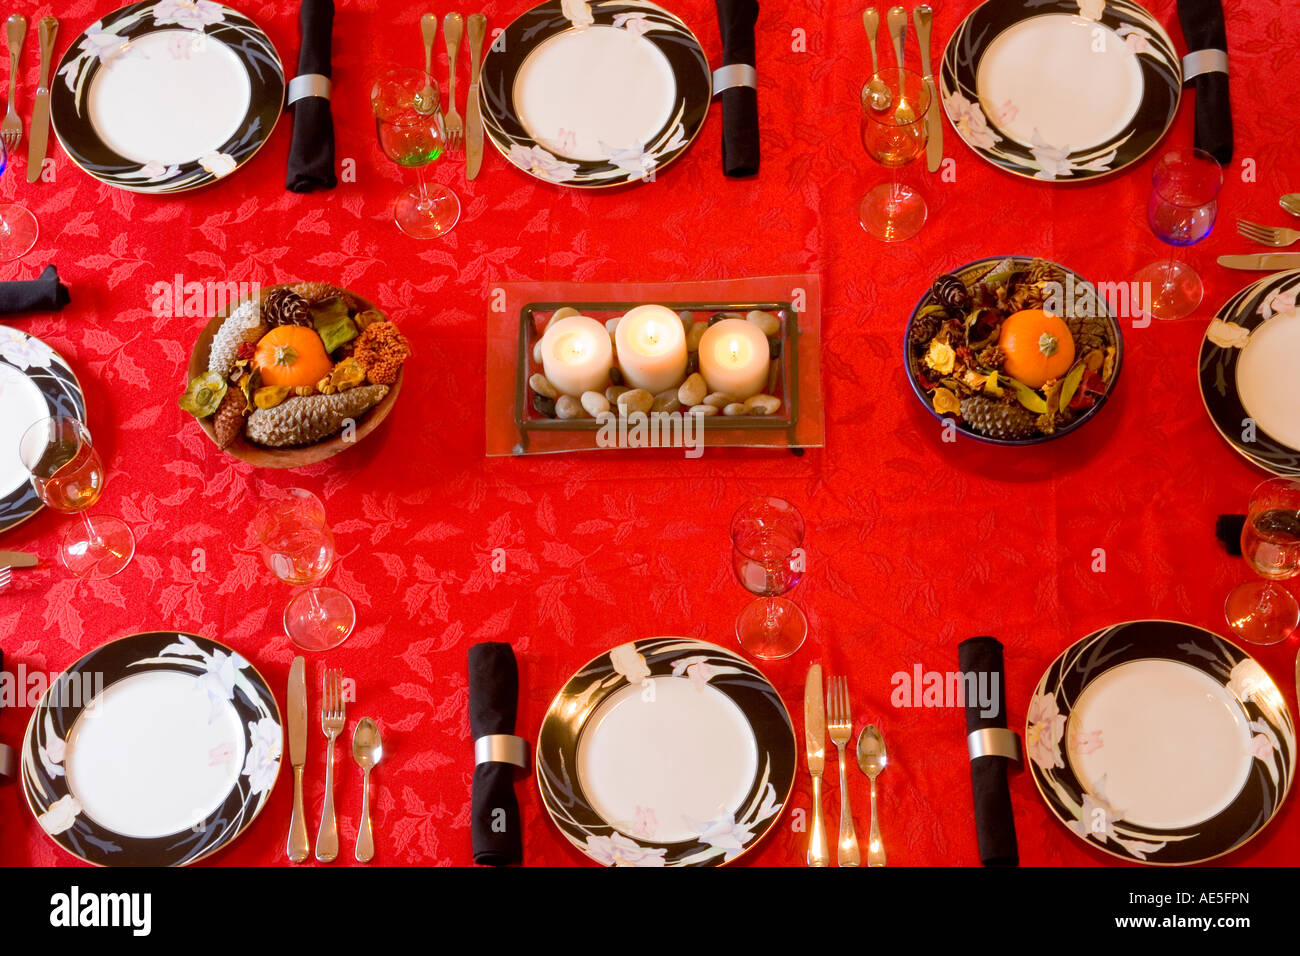 Tablecloth For Dining Room Table Aerial View Of A Dining Room Table Place Settings With Red Stock